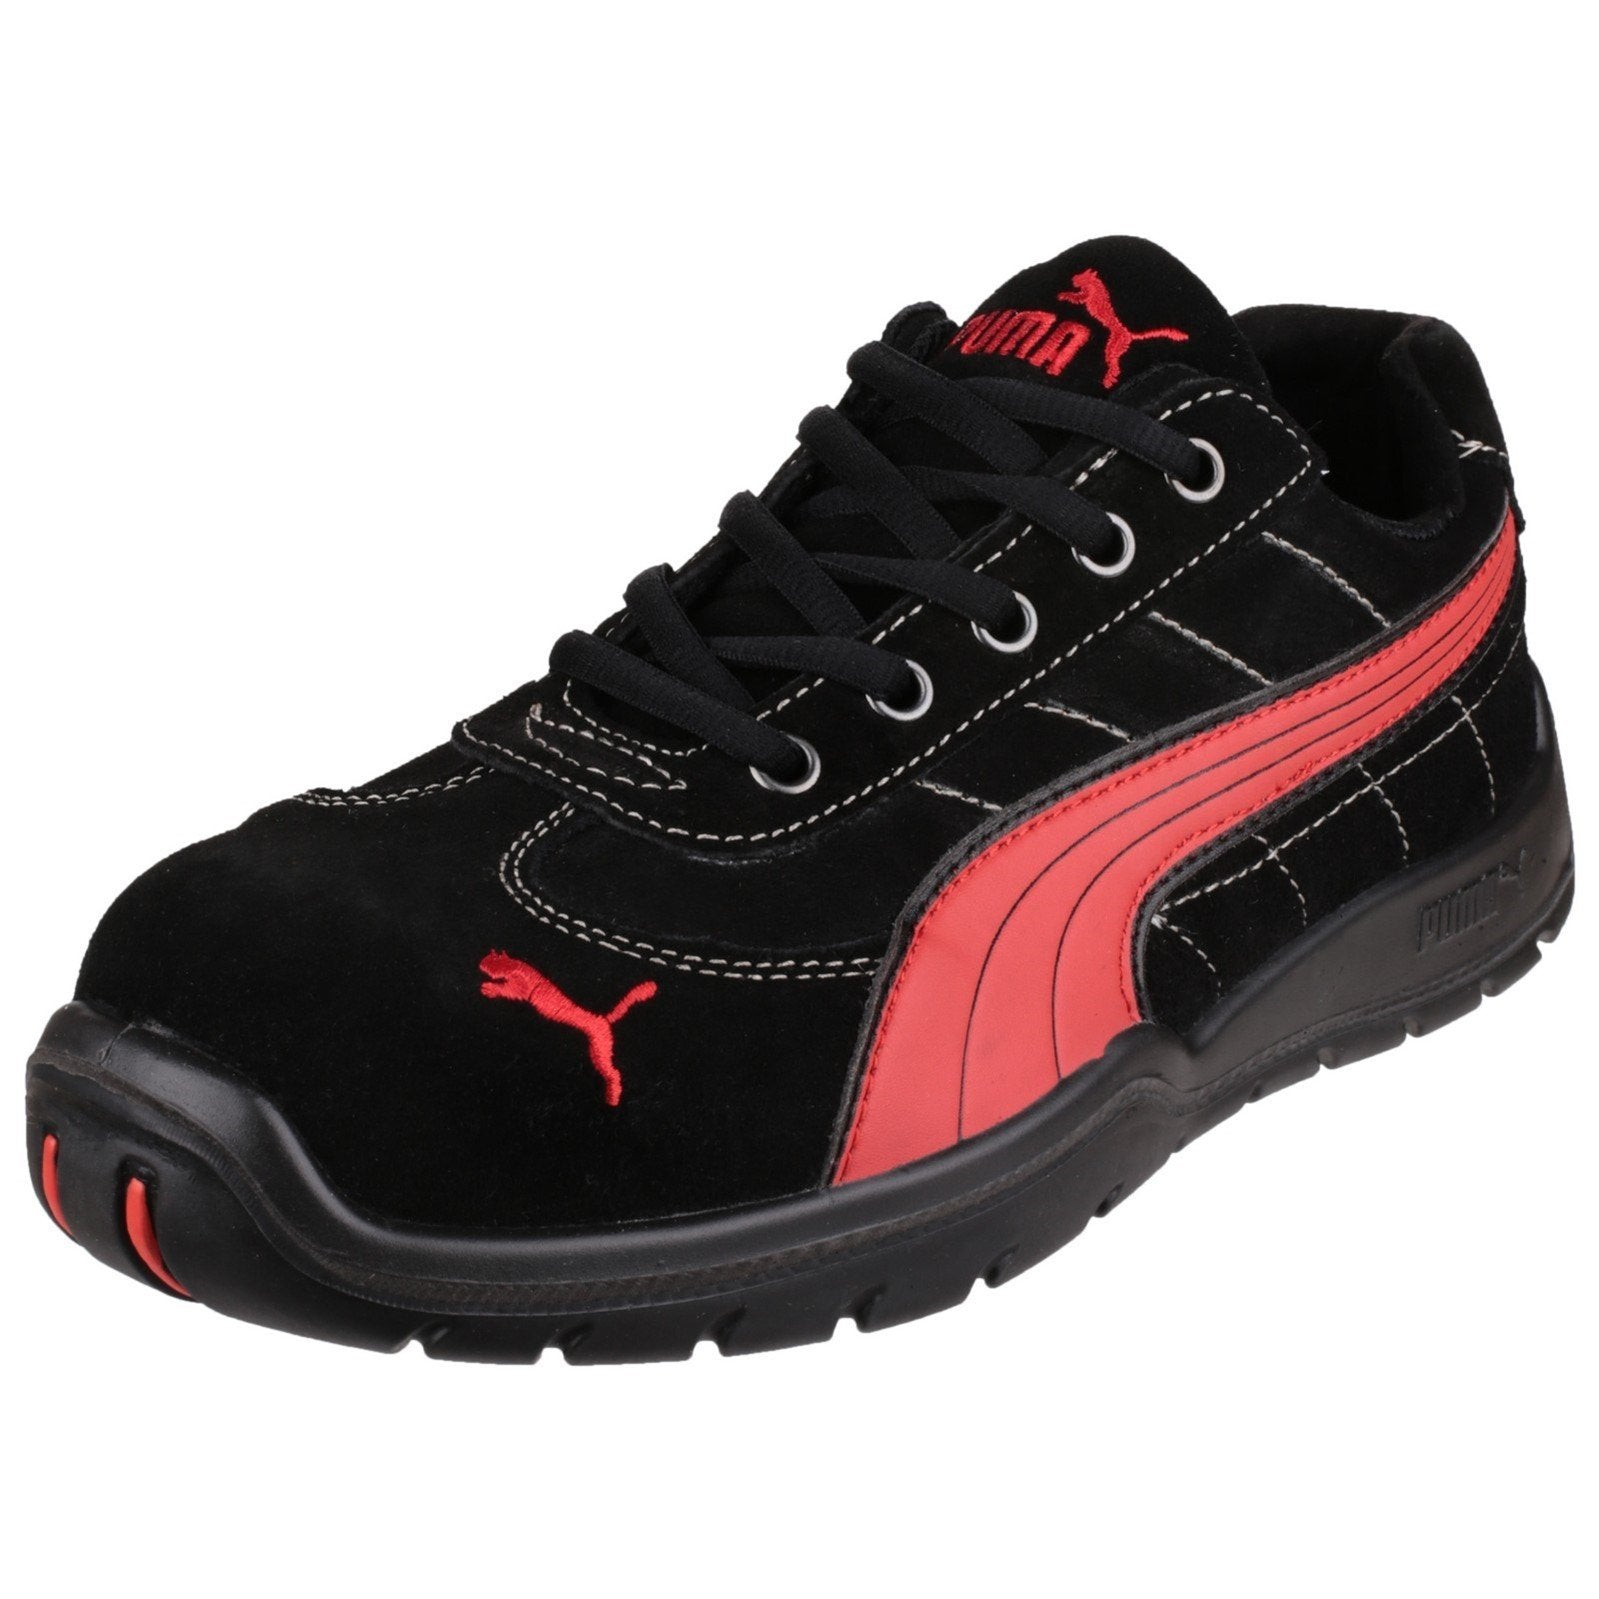 Puma Safety Silverstone Low Trainers